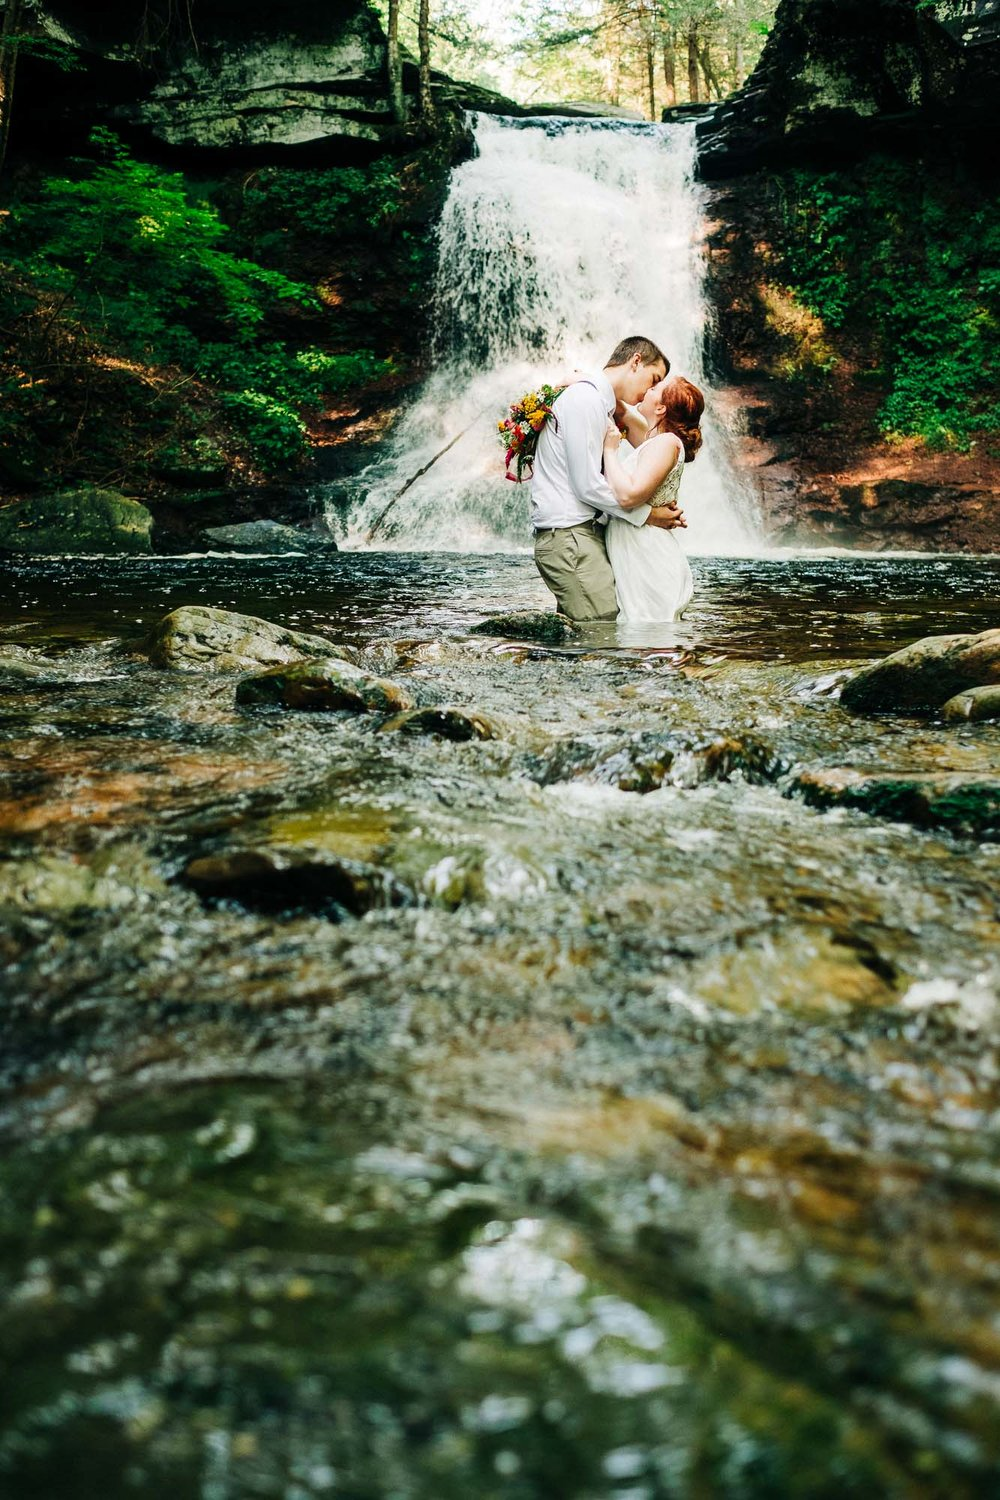 ricketts-glen-waterfall-pennsylvania-sullivan-falls-elopement-1406.jpg